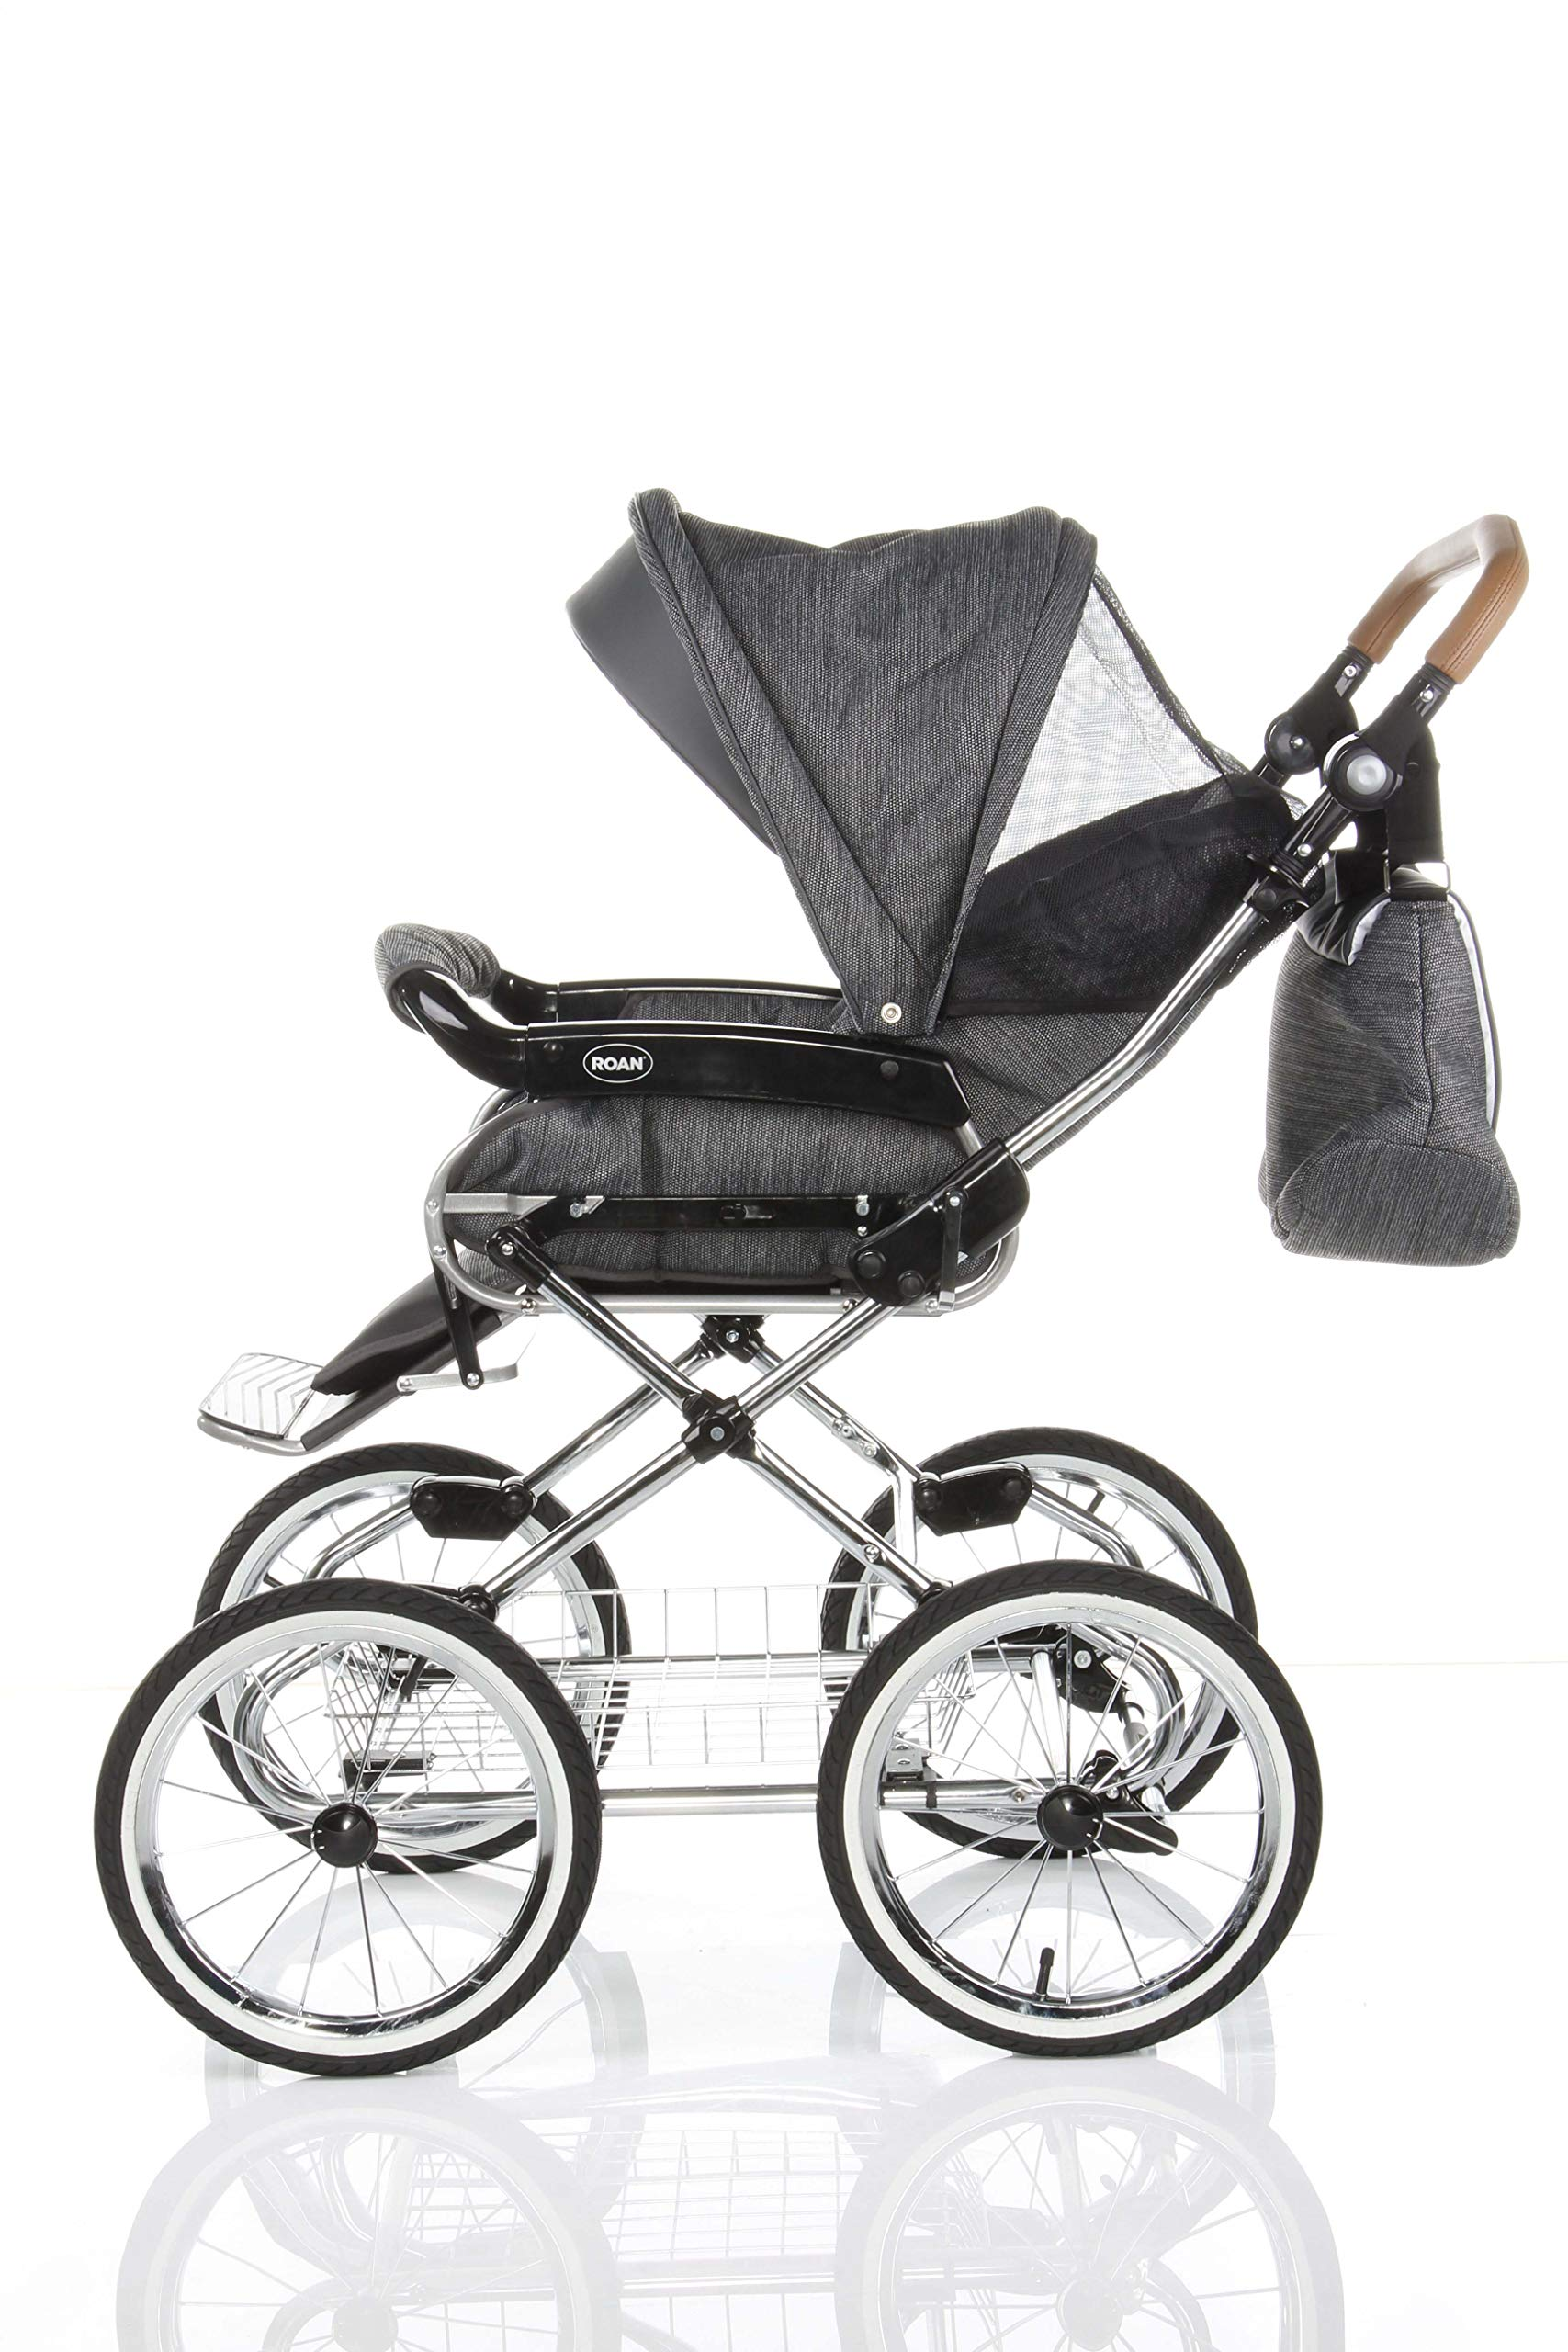 Children's Pram Buggy Stroller Combination Car seat Classic Retro Baby Carrier ROAN Emma (E-81 Dark Grey Melange-Grey Leather, 2IN1) JUNAMA Frame / wheels Sturdy and lightweight aluminum frame construction with folding function 1-click system for easy assembly and disassembly Practical carrying handle for easy storage of the folded frame Wheels for inflating (14 inch) removable wheels Brake system with central brake Height-adjustable push handle - 10-fold matching shopping basket Dimensions folded with wheels: 86 x 60 x 40 cm folded without wheels: 76 x 60 x 26 cm Total height of the stroller to hood top: 106 cm Height of the tub from the ground: 60 cm Wheelbase External dimensions: 80x 58 cm Variable height of the push handle: 77- 119 cm Weight of the frame incl. Wheels and carrying bag 15 kg Carrycot Length and width of carrycot outside: 88 x 42 cm Carrying bag length and width inside: 76 x 35 cm Sturdy plastic tub with comfortable mattress and side protection Ventilation slots on the plastic tub The baby car seat 0-13 kg Maxi-Cosi in black incl. Adapter 6